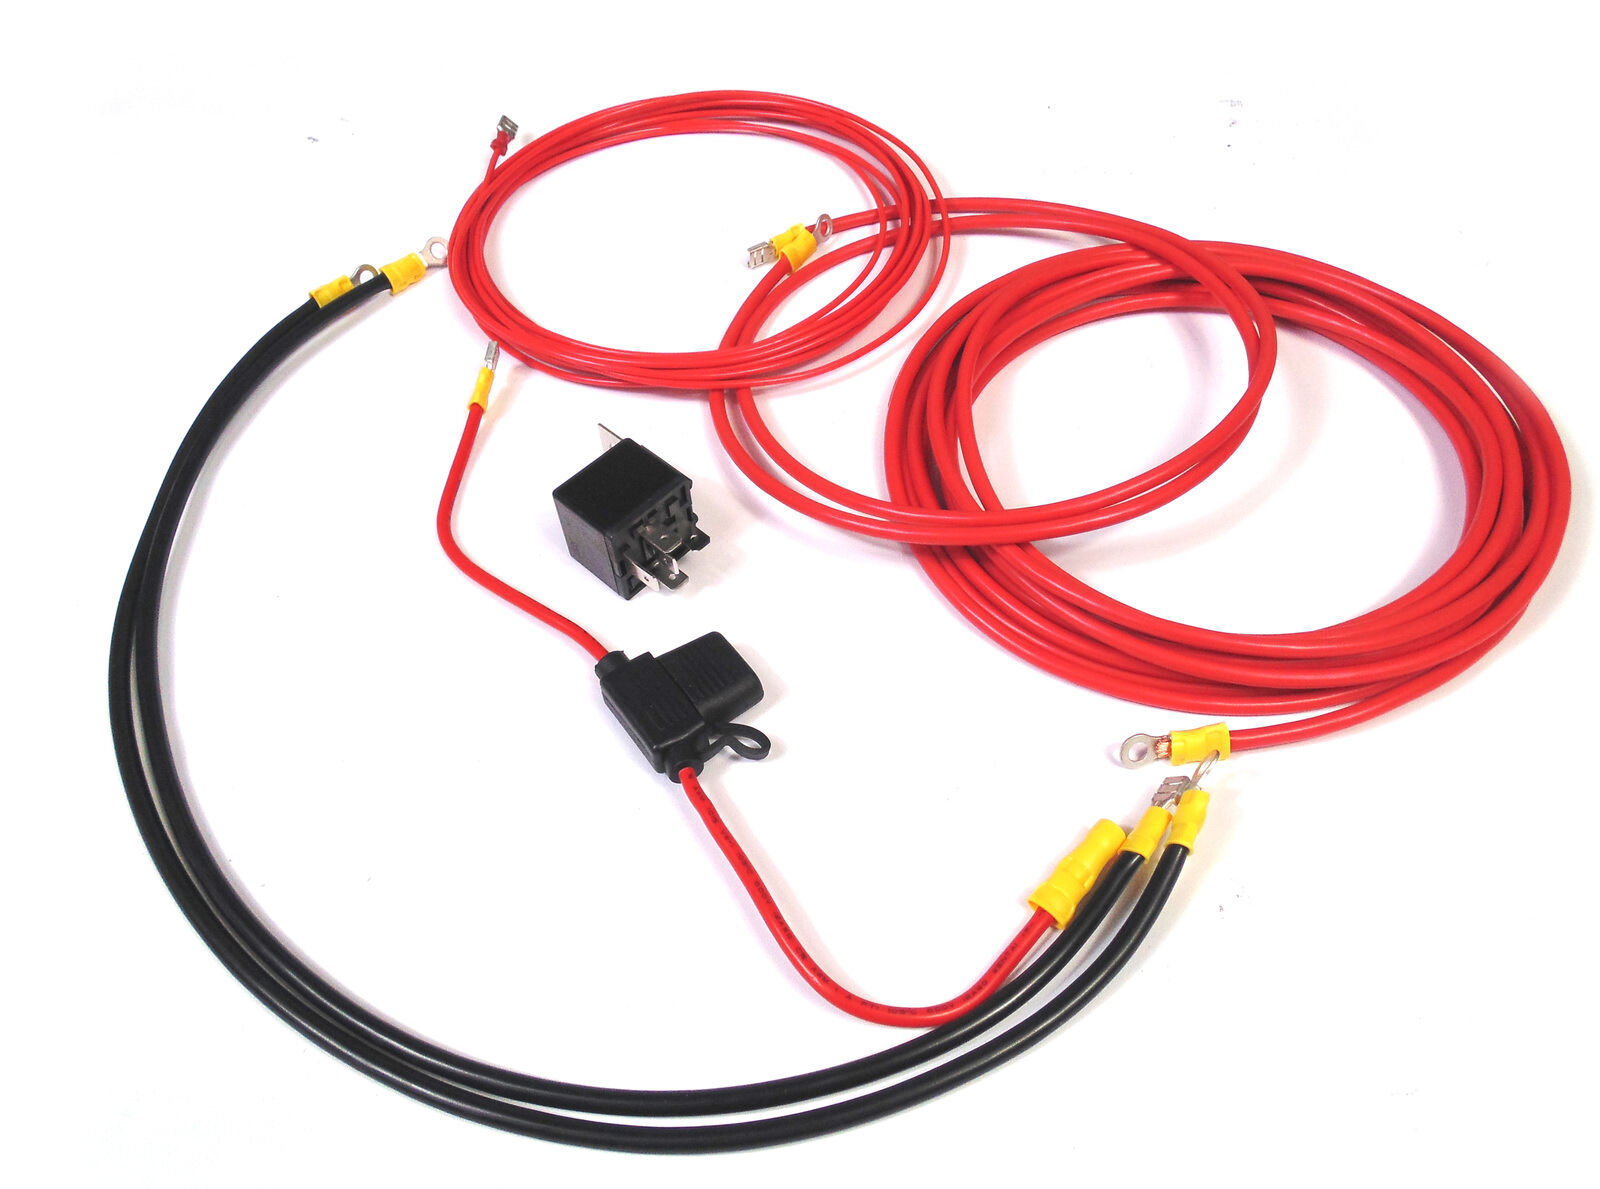 Wiring Fitting Kit For Walbro Bosch 044 255lph High Flow Fuel Pump Connectors Aftermarket